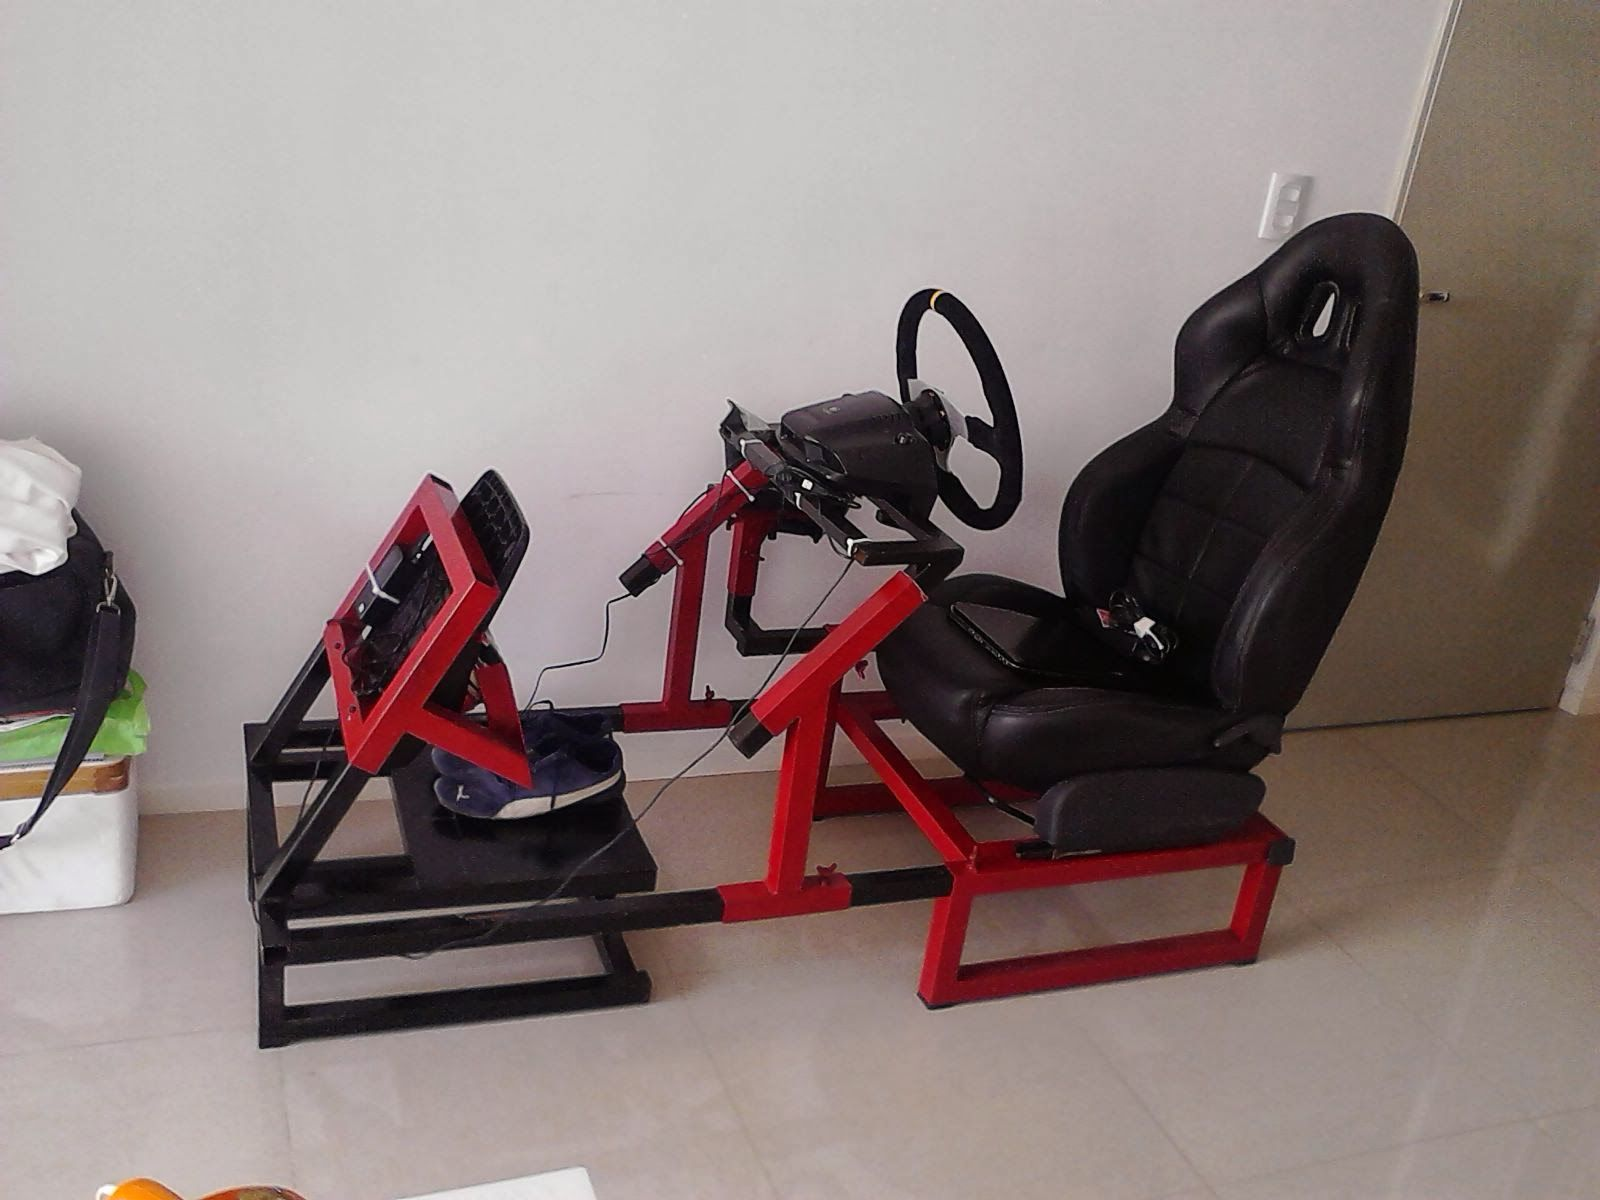 Simulador De Muebles Logitech G29 Chair Mueble De Simulador T Chair Cars